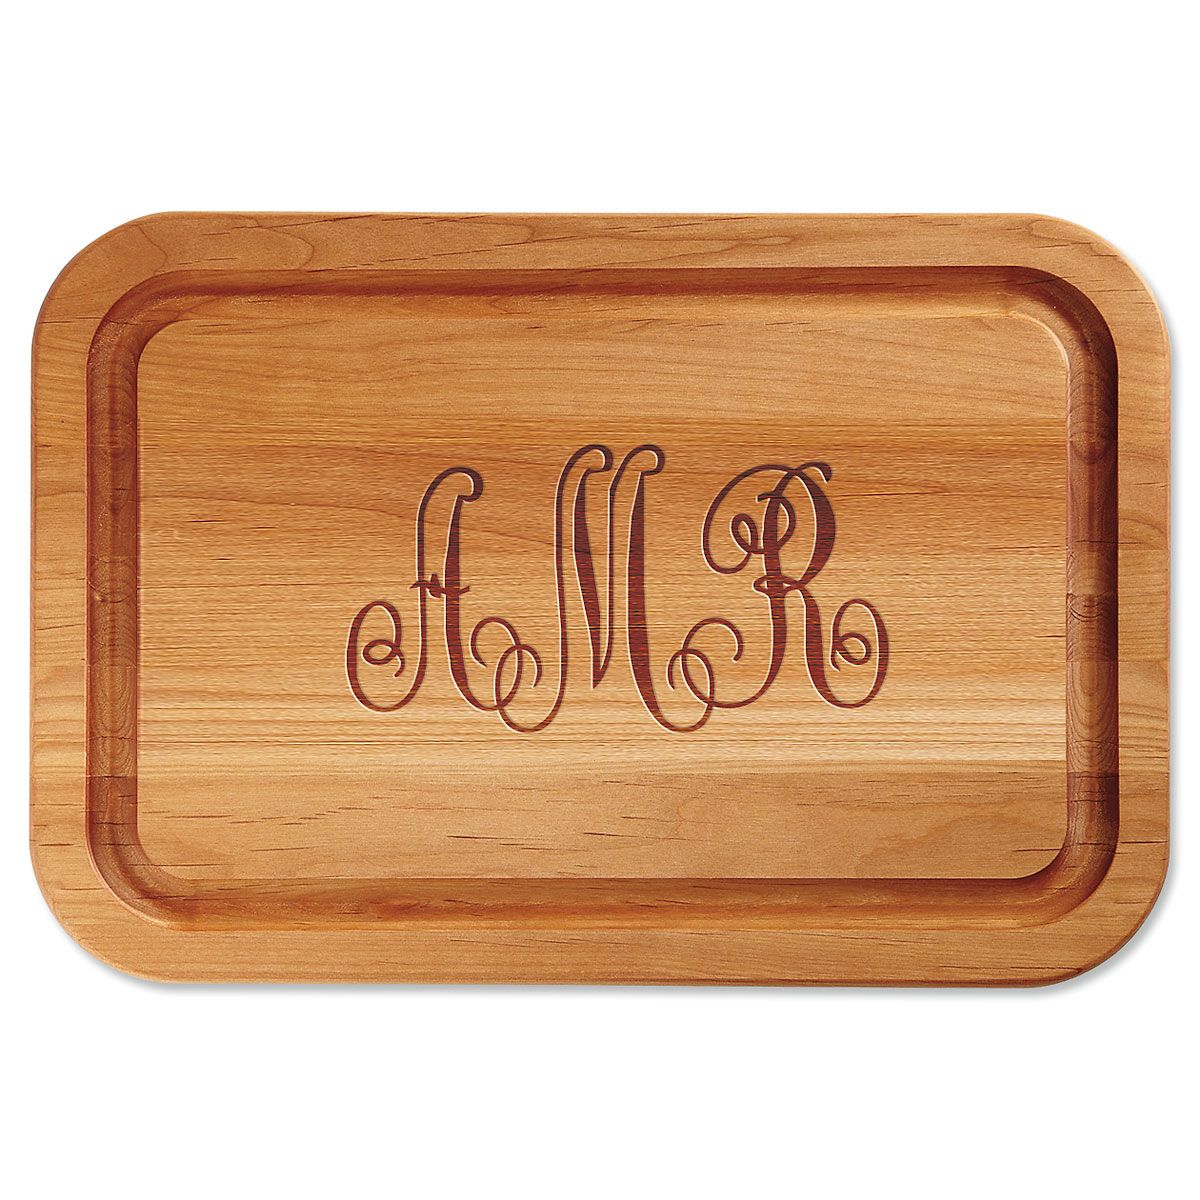 Personalized Monogrammed Engraved Wood Cutting Board